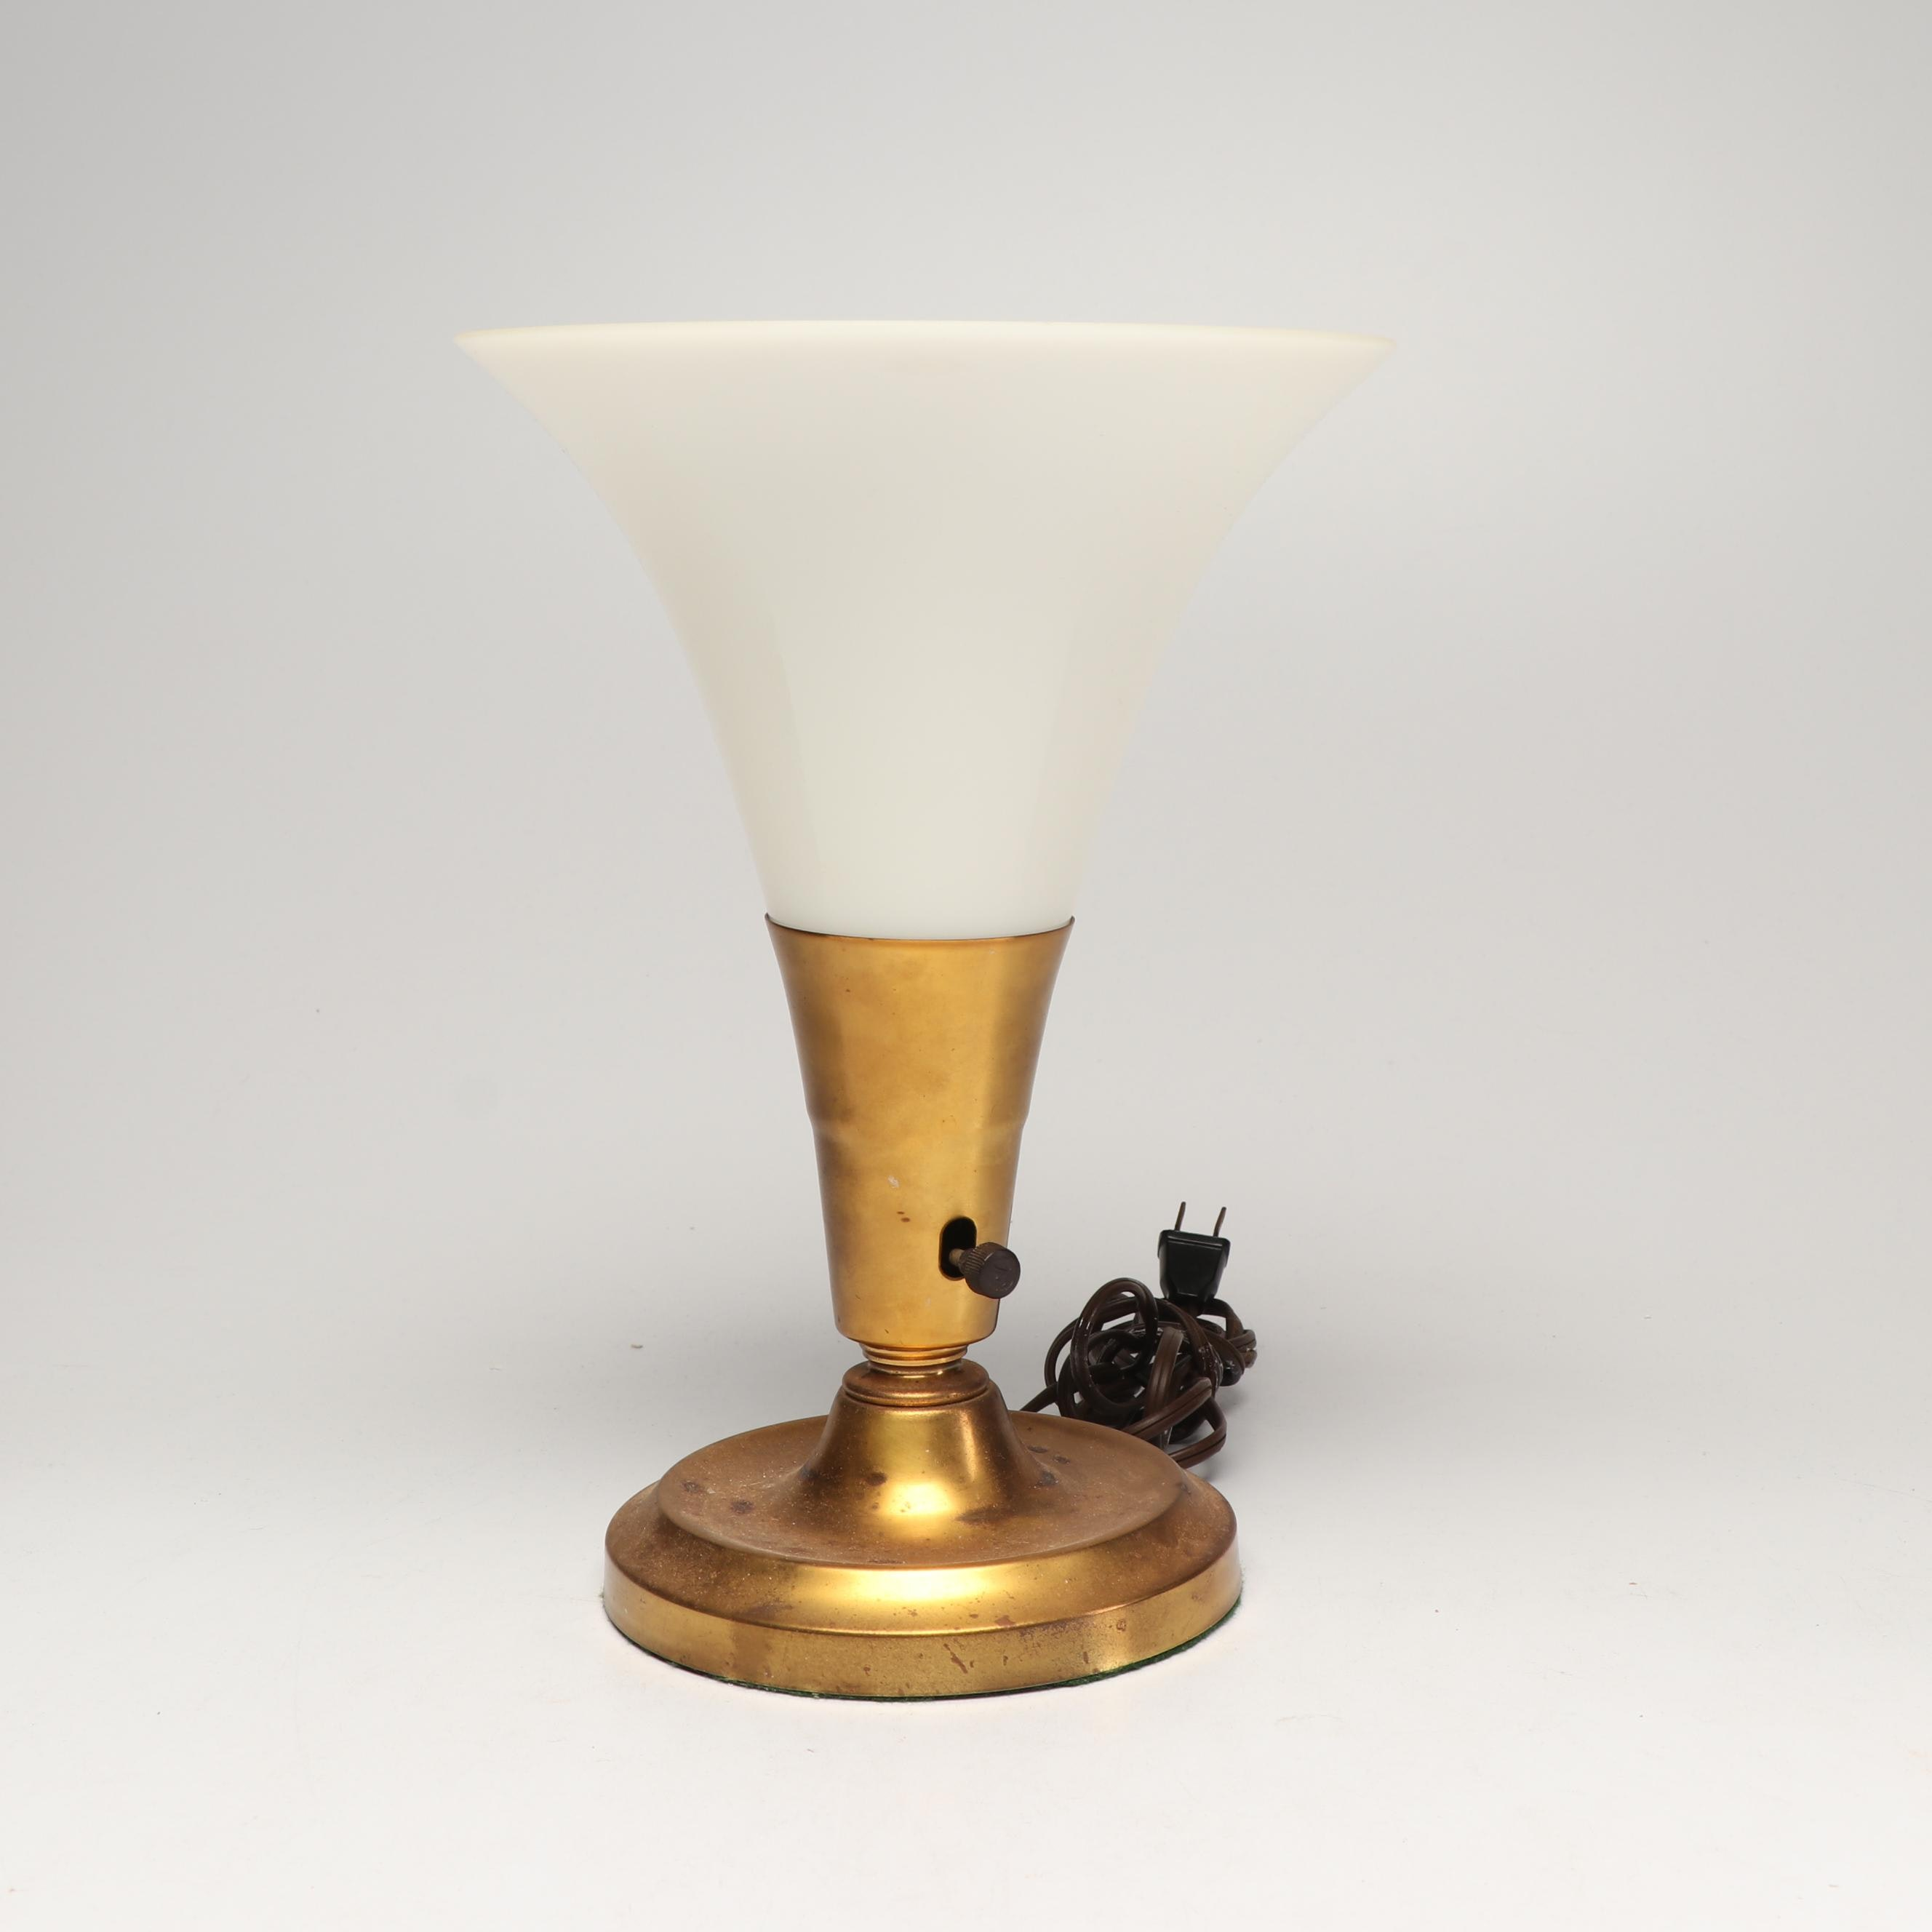 Brass and Milk Glass Torchette Table Lamp, Mid-Century